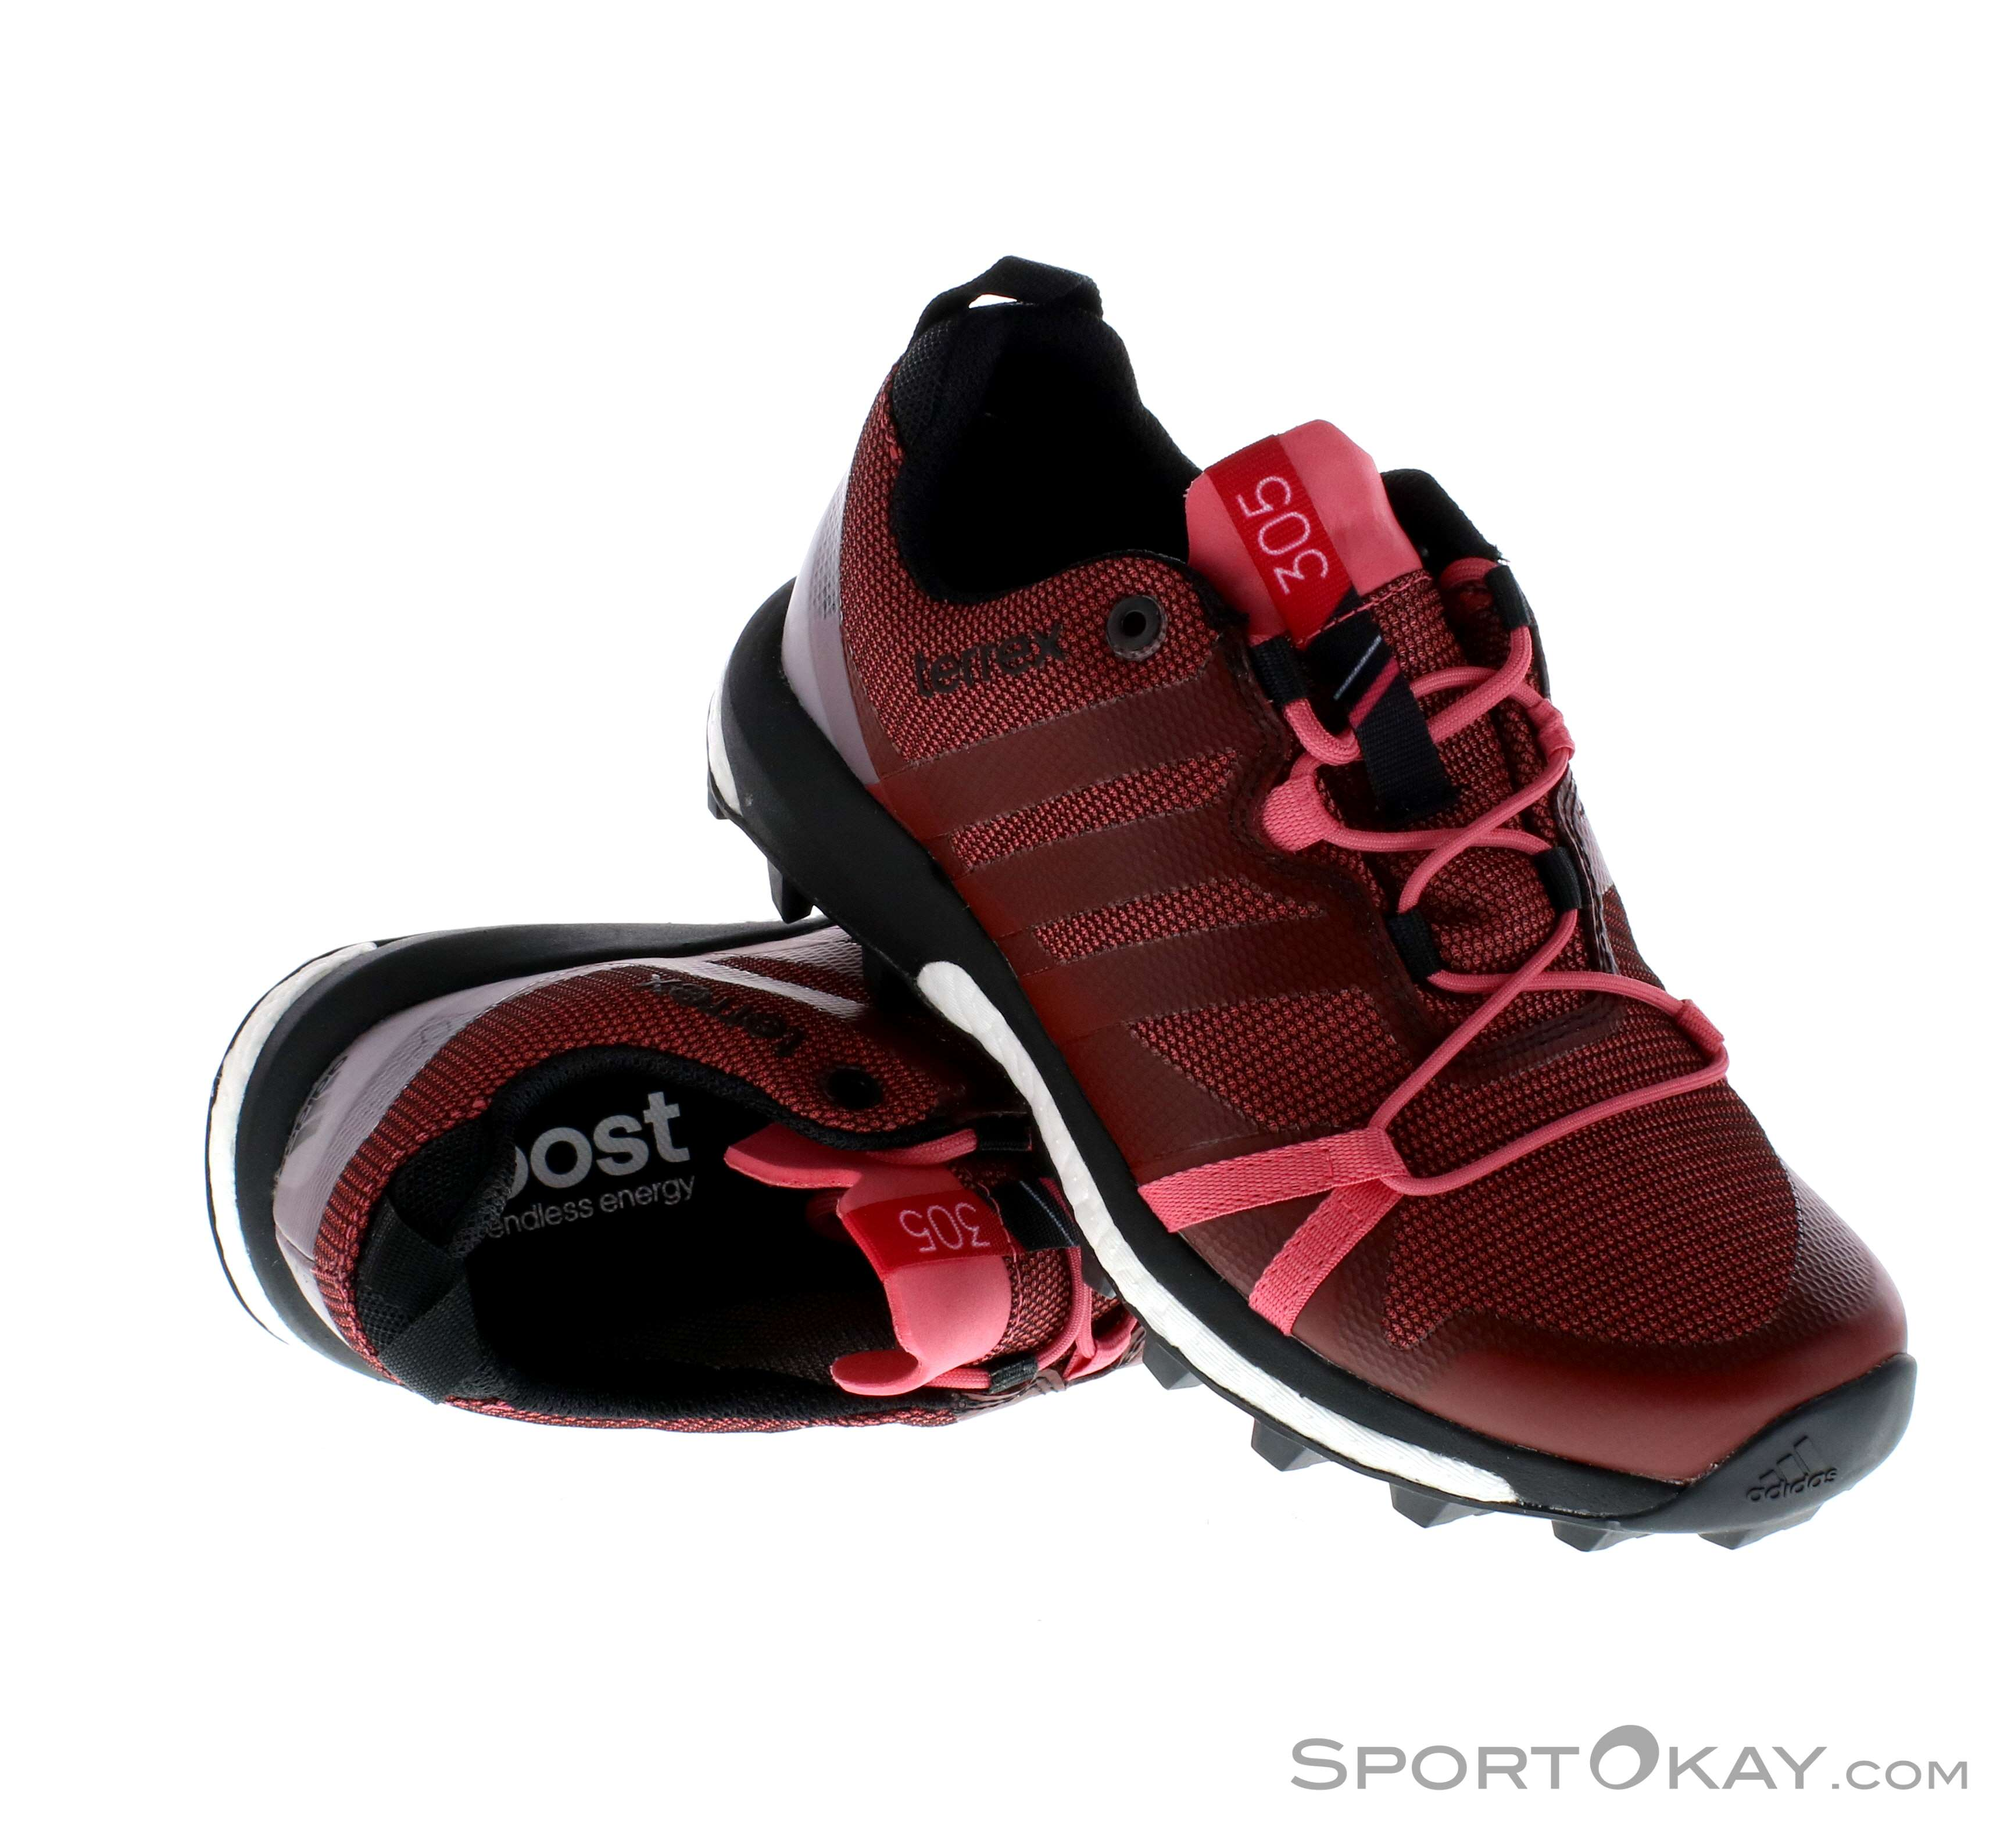 best authentic 839d6 363aa adidas Terrex Agravic GTX Ws Trail Running Shoes Gore-Tex, adidas, Red,